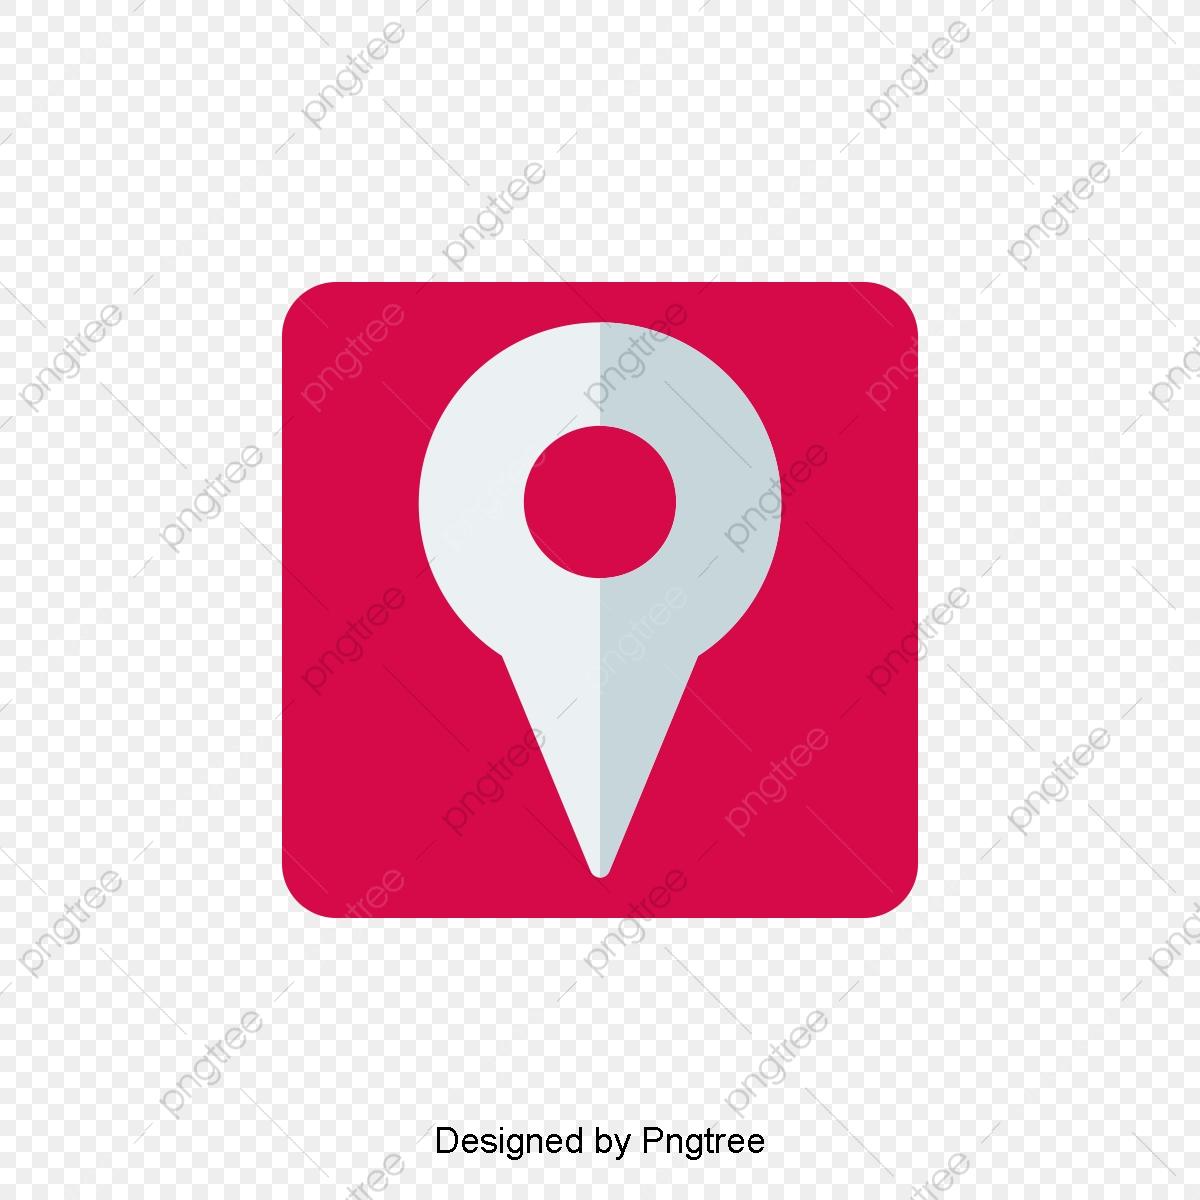 location clipart png images vector and psd files free download on pngtree https pngtree com freepng flat location icon symbol 647472 html